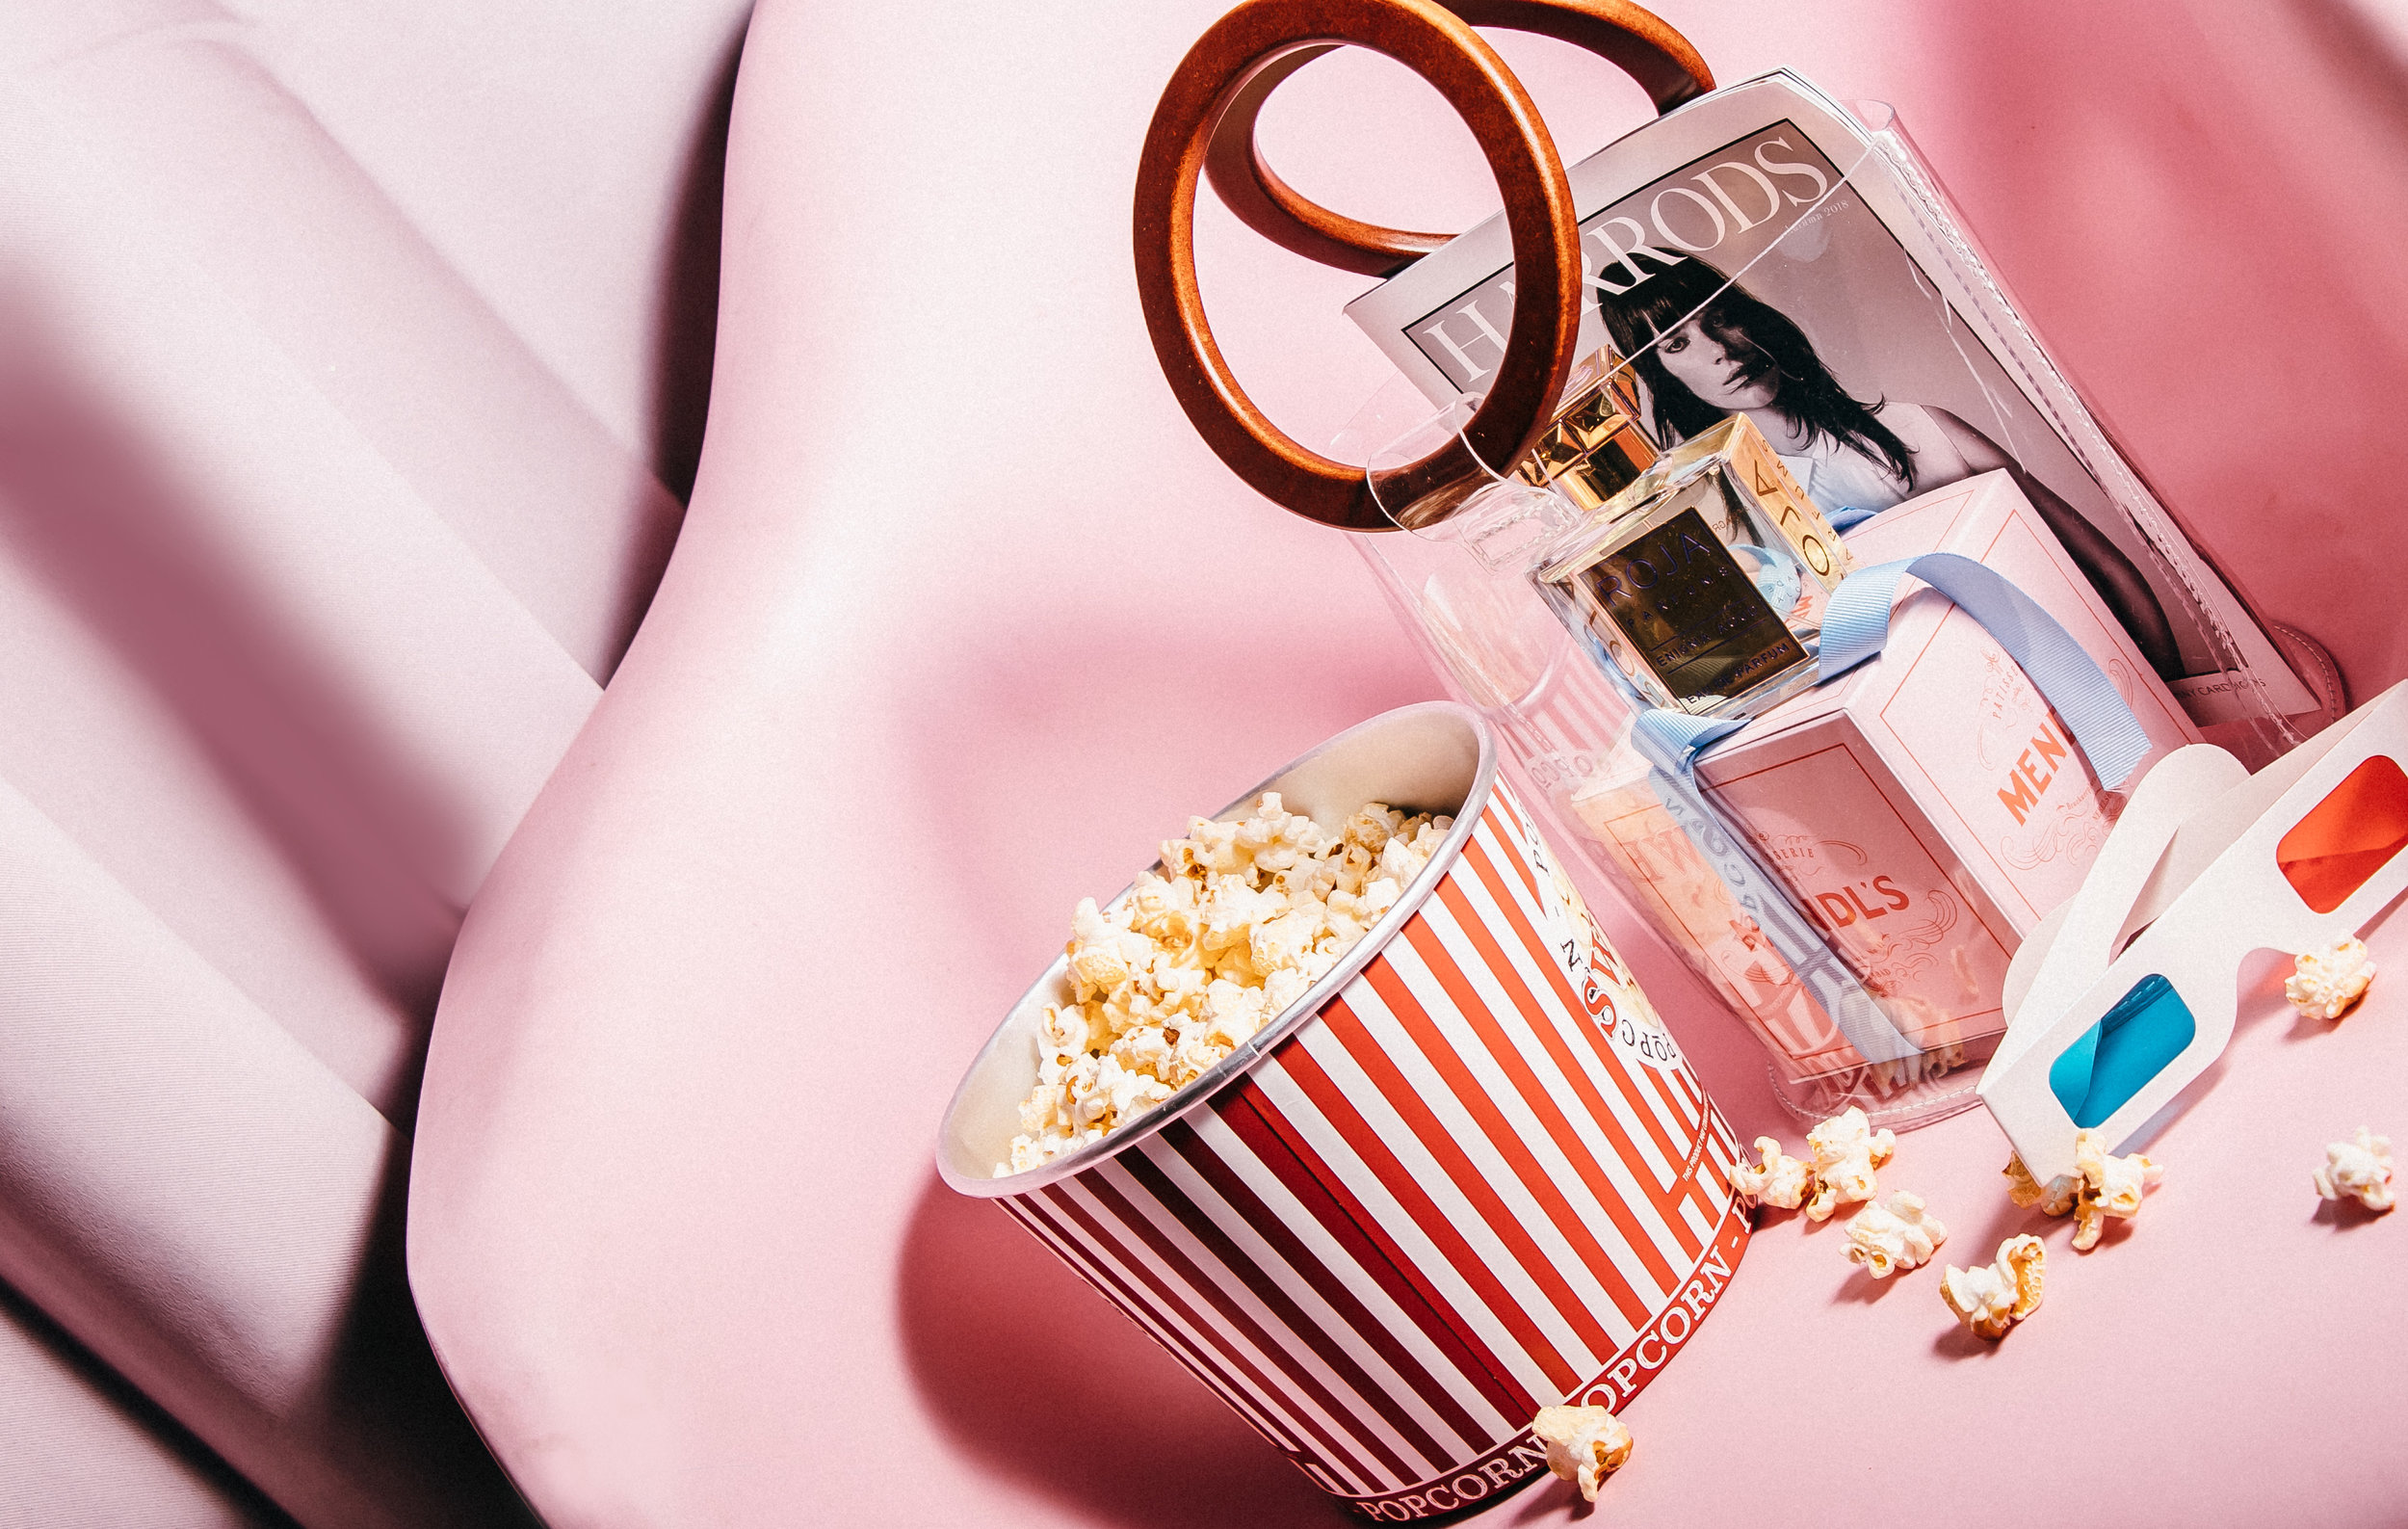 Movie night with Roja - Enigma Aoud:Fresh, Cool, Sweet, Fruity, Warm, Powdery